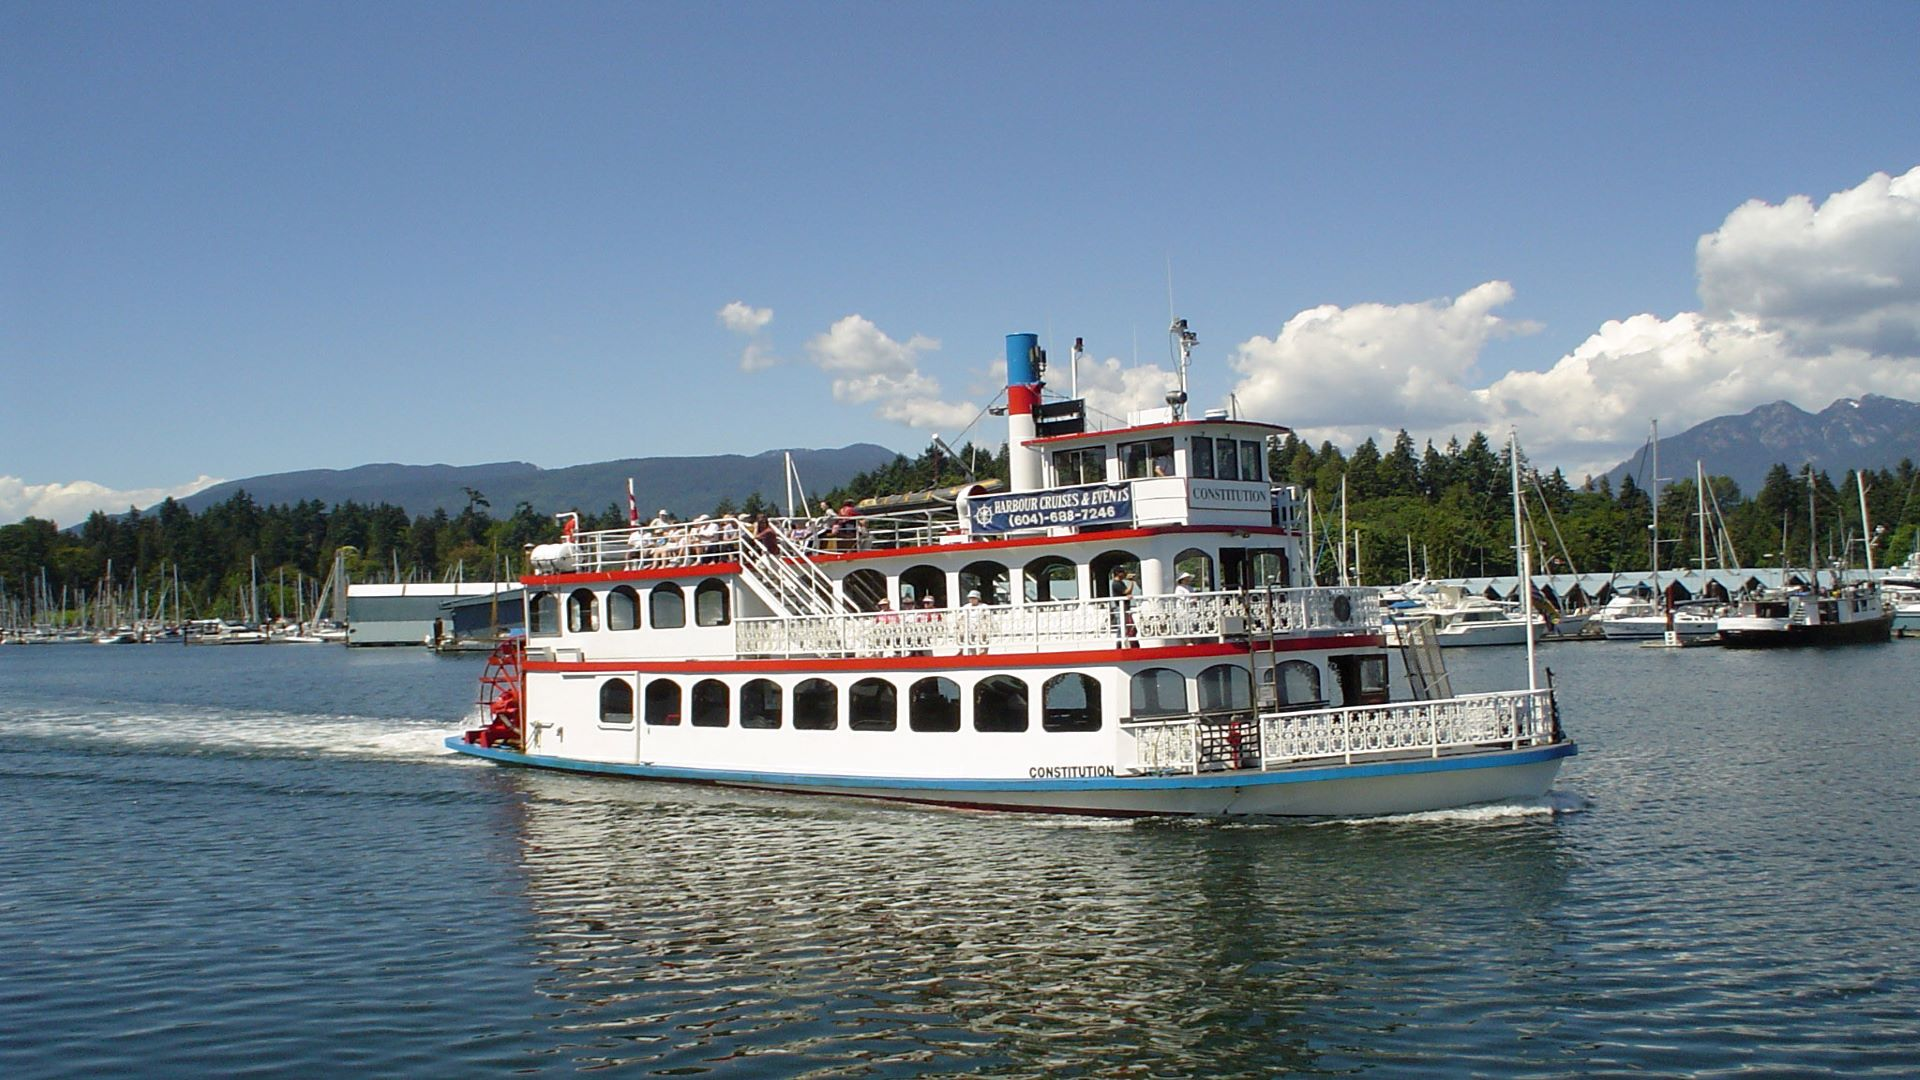 Sunset Dinner Cruise Tour - Accommodations in Vancouver